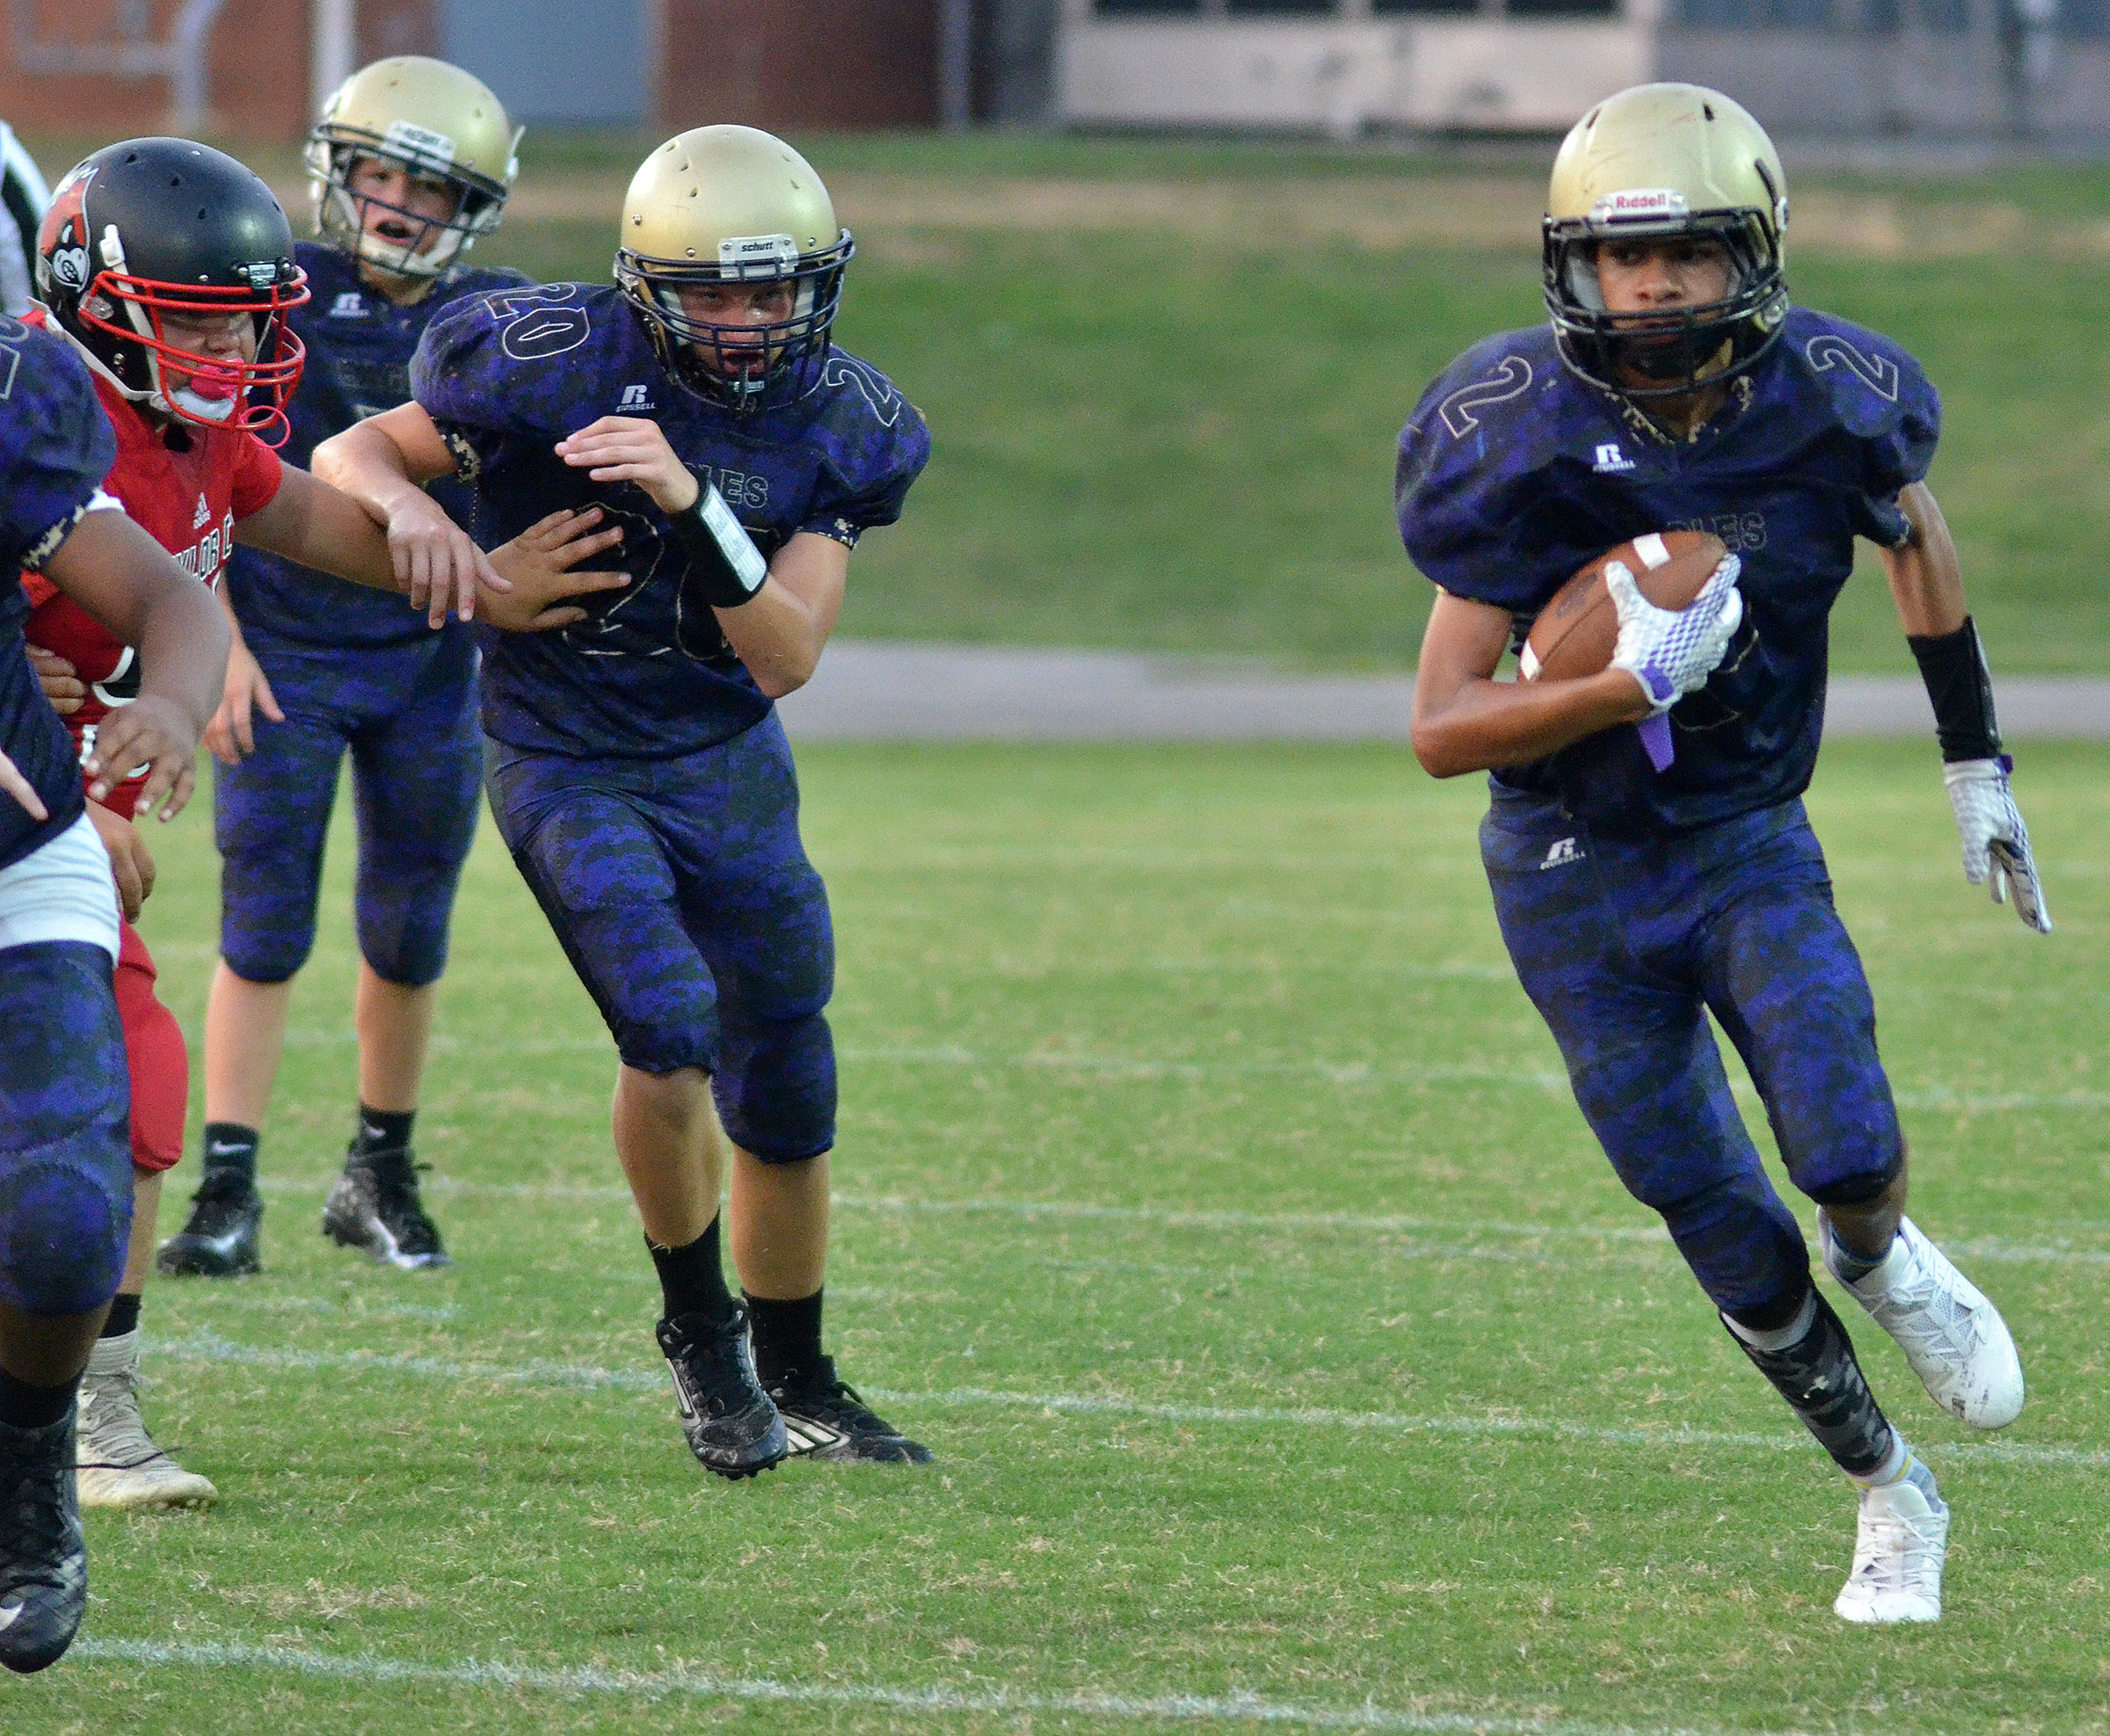 CMS eighth-grader Adrien Smith runs the ball, as seventh-grader Damon Johnson blocks for him.